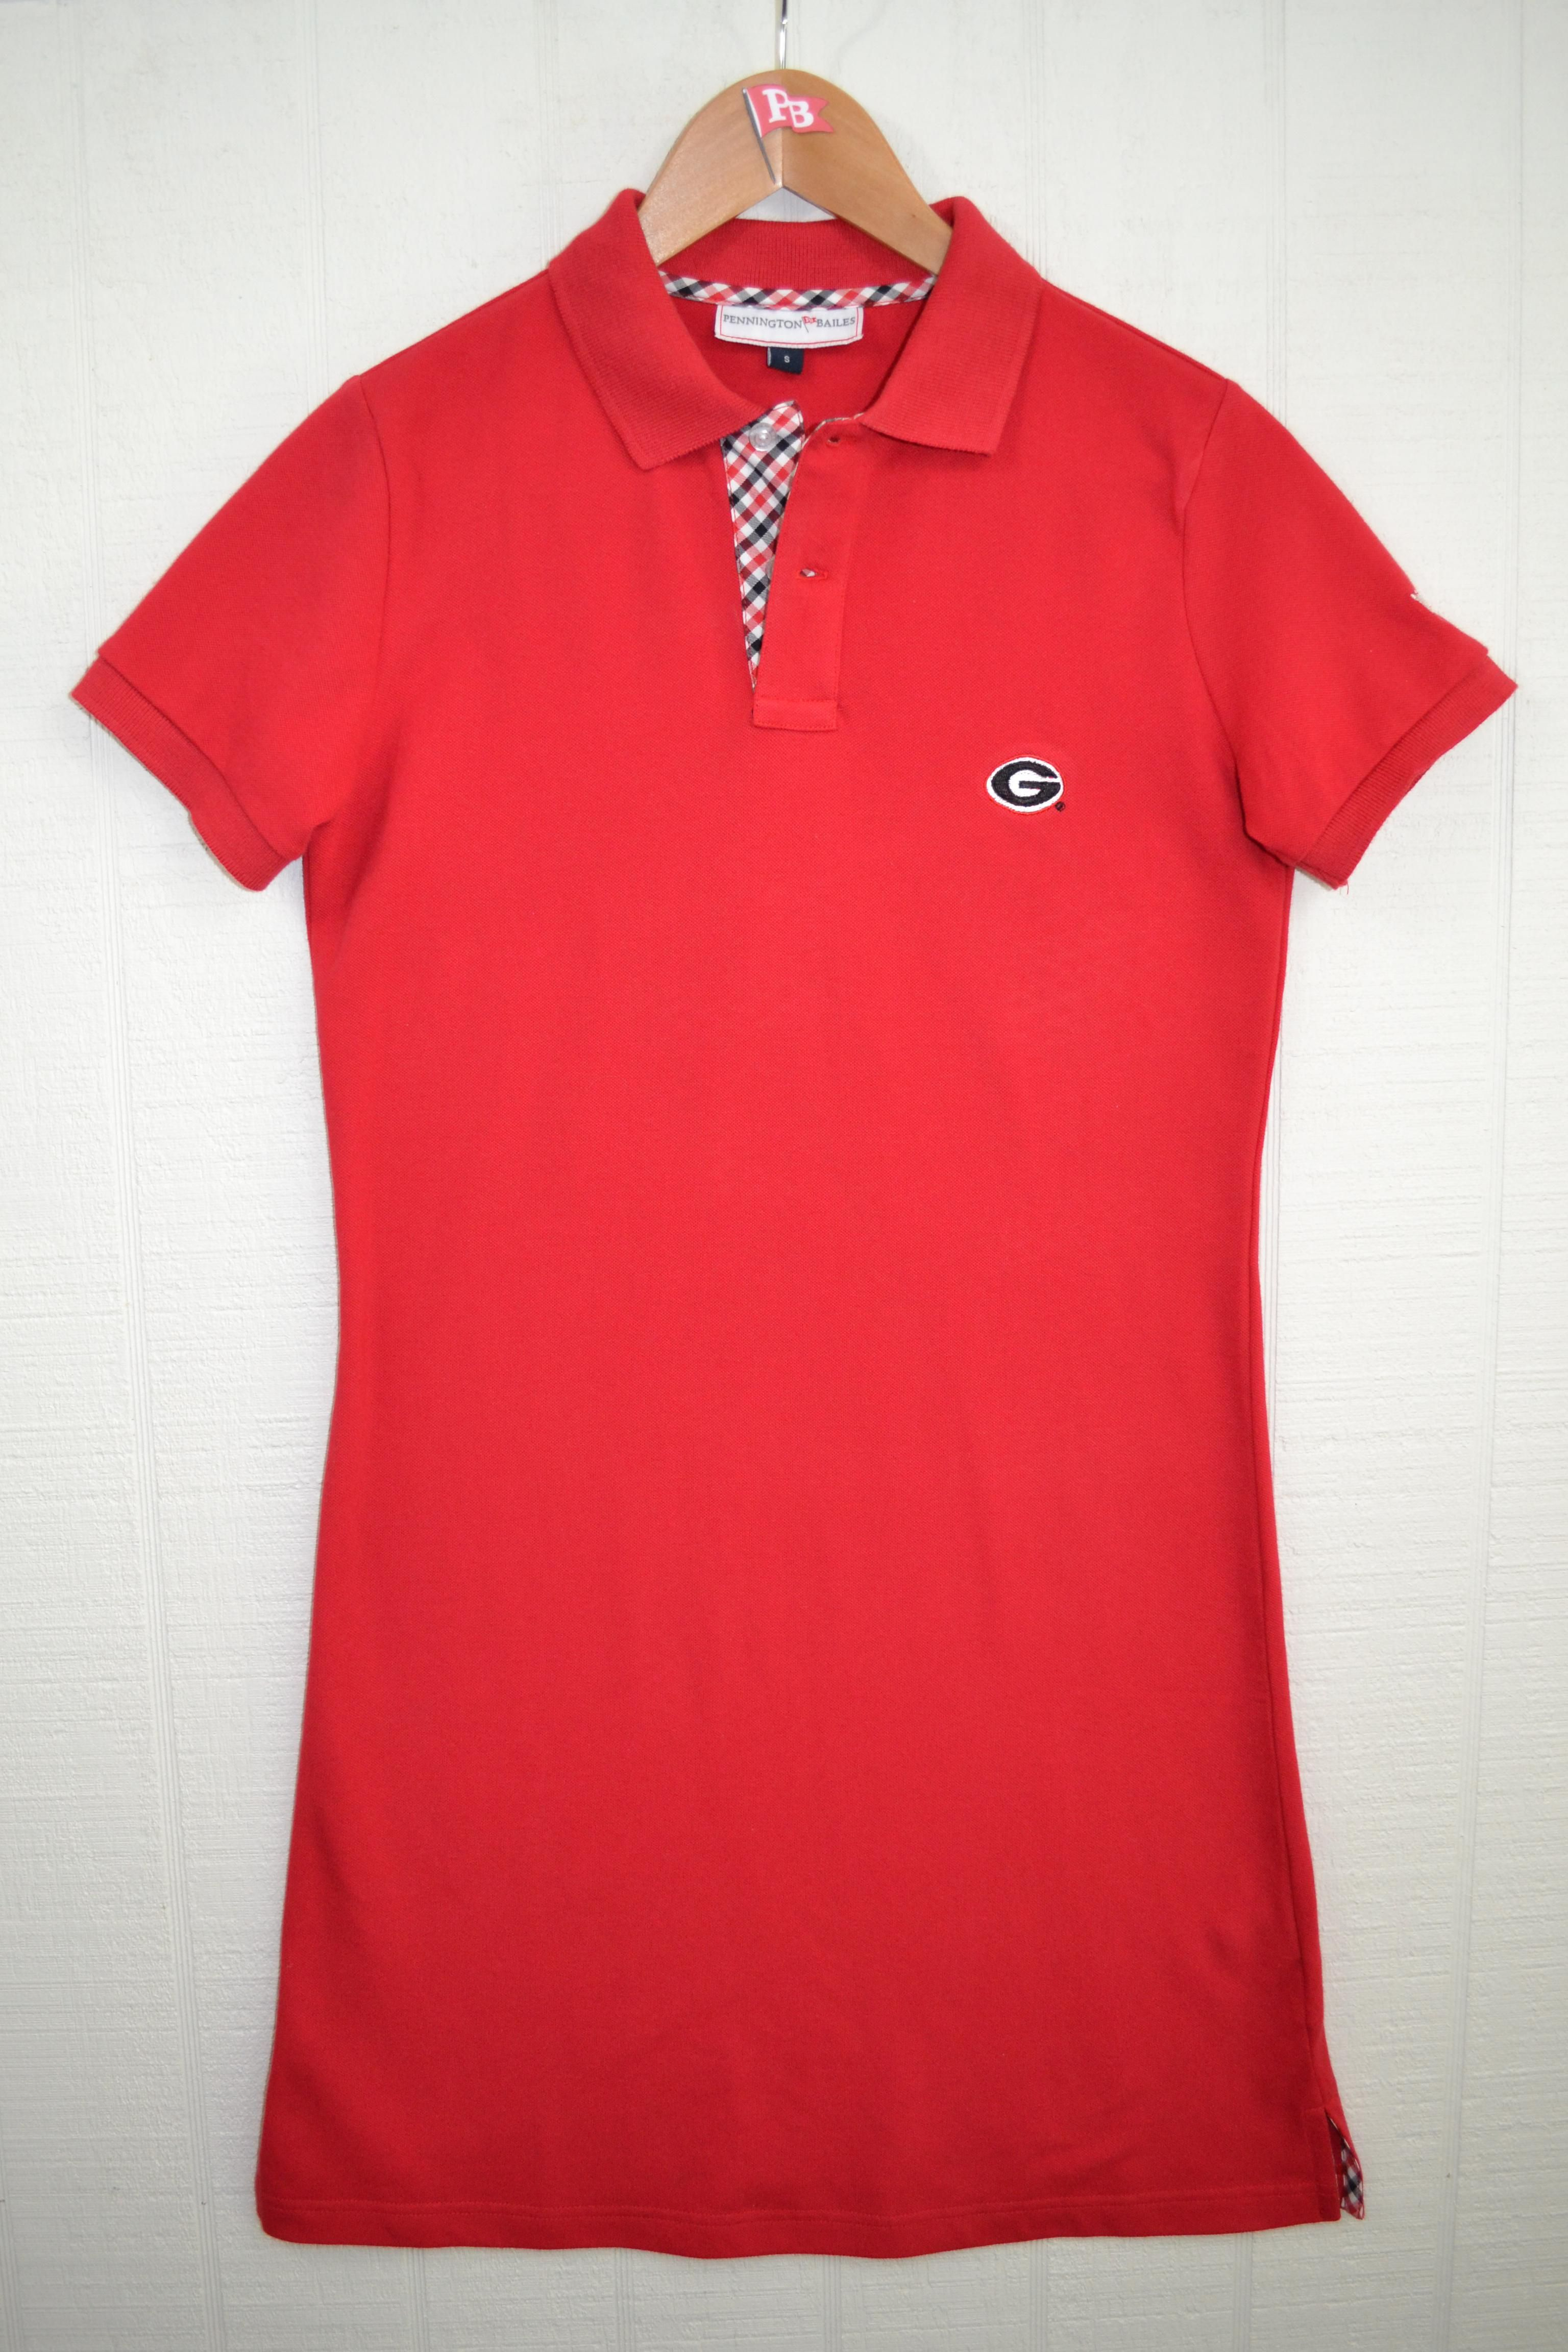 Classic Gameday Polo Dress Pennington Bailes Perfect For Early